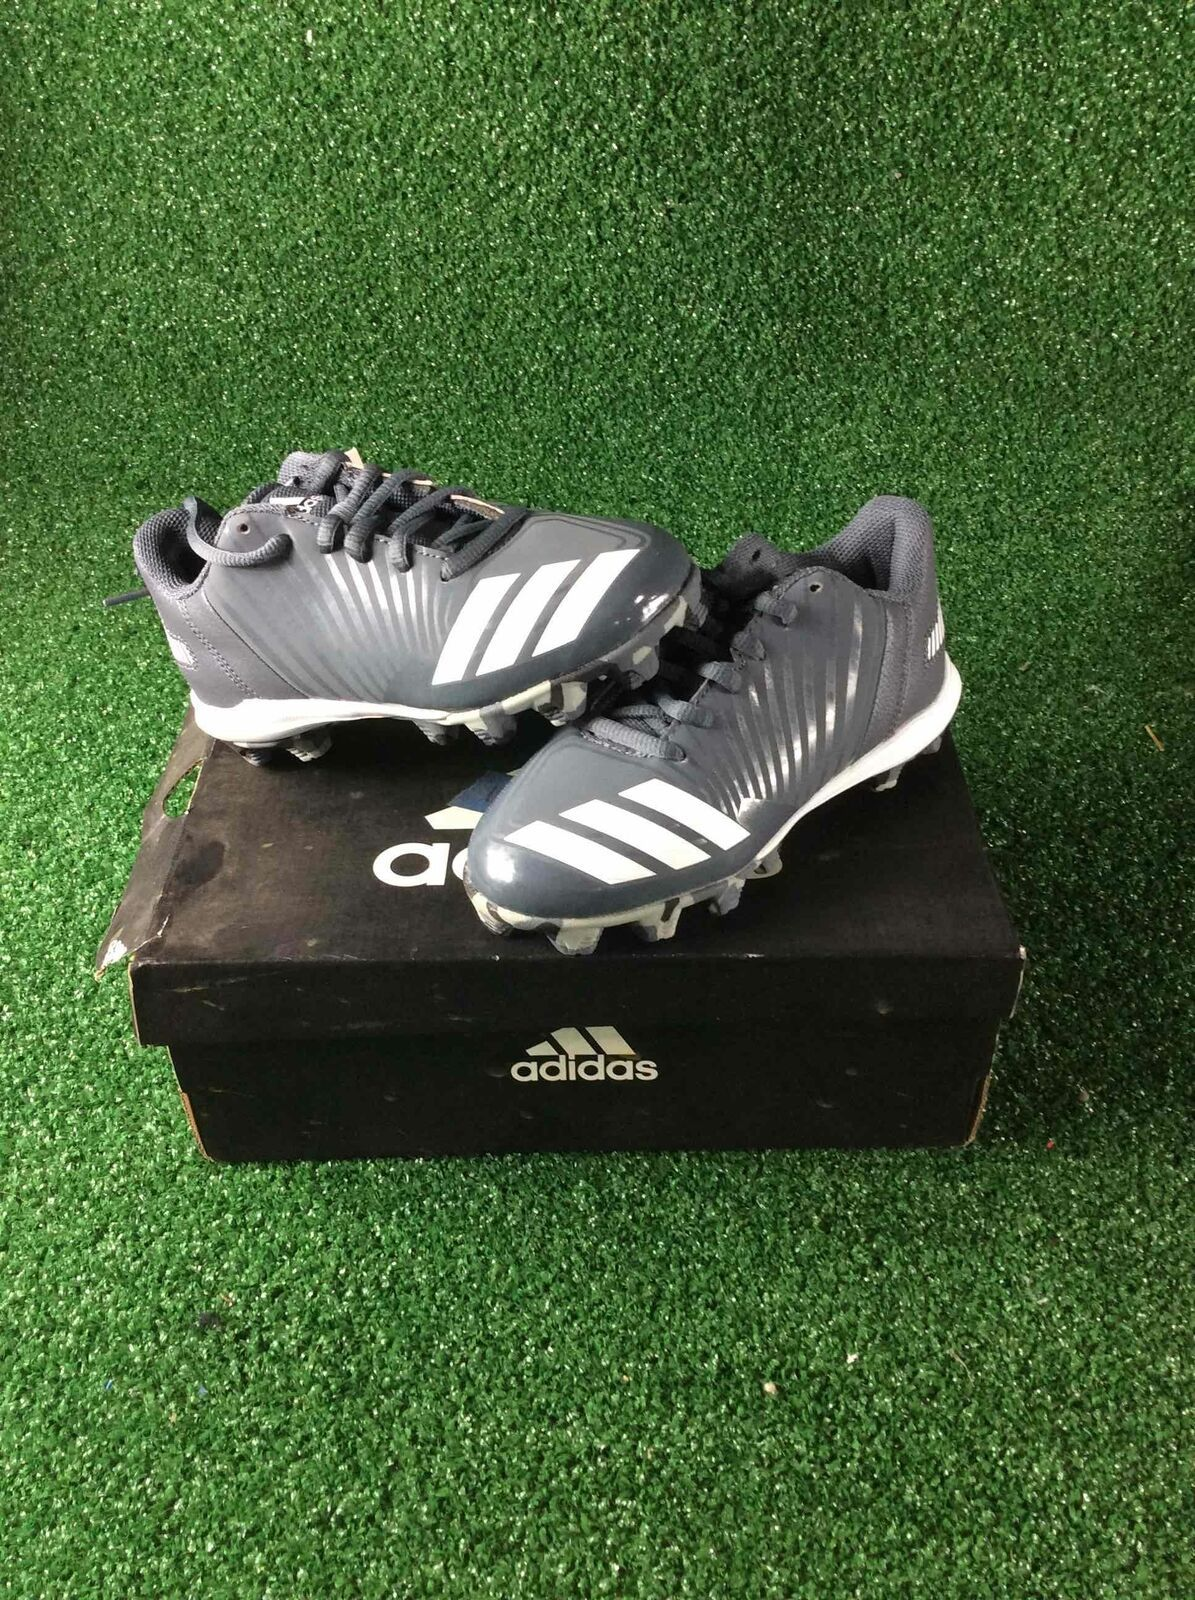 Primary image for Adidas Icon MD K 12.0 Youth Size Baseball Cleats